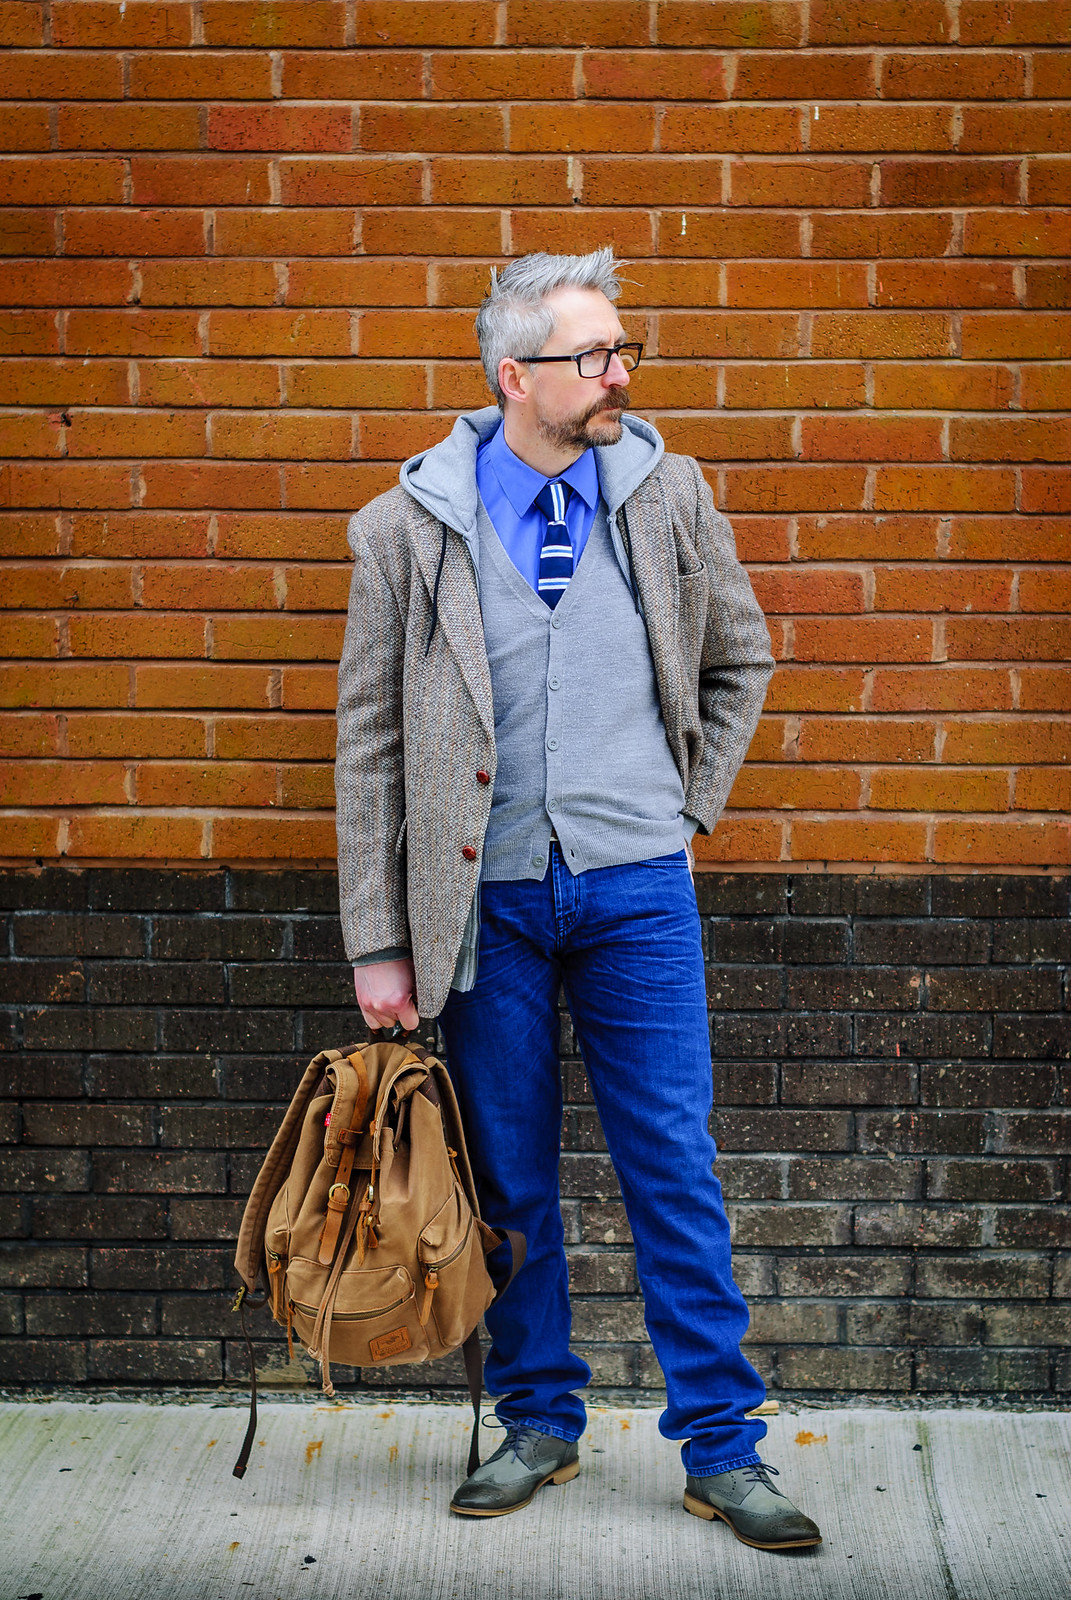 A layered smart casual outfit: Striped tie \ dress shirt \ grey cardigan \ grey hoodie \ Harris tweed jacket \ jeans \ grey brogues | Silver Londoner, over 40 menswear